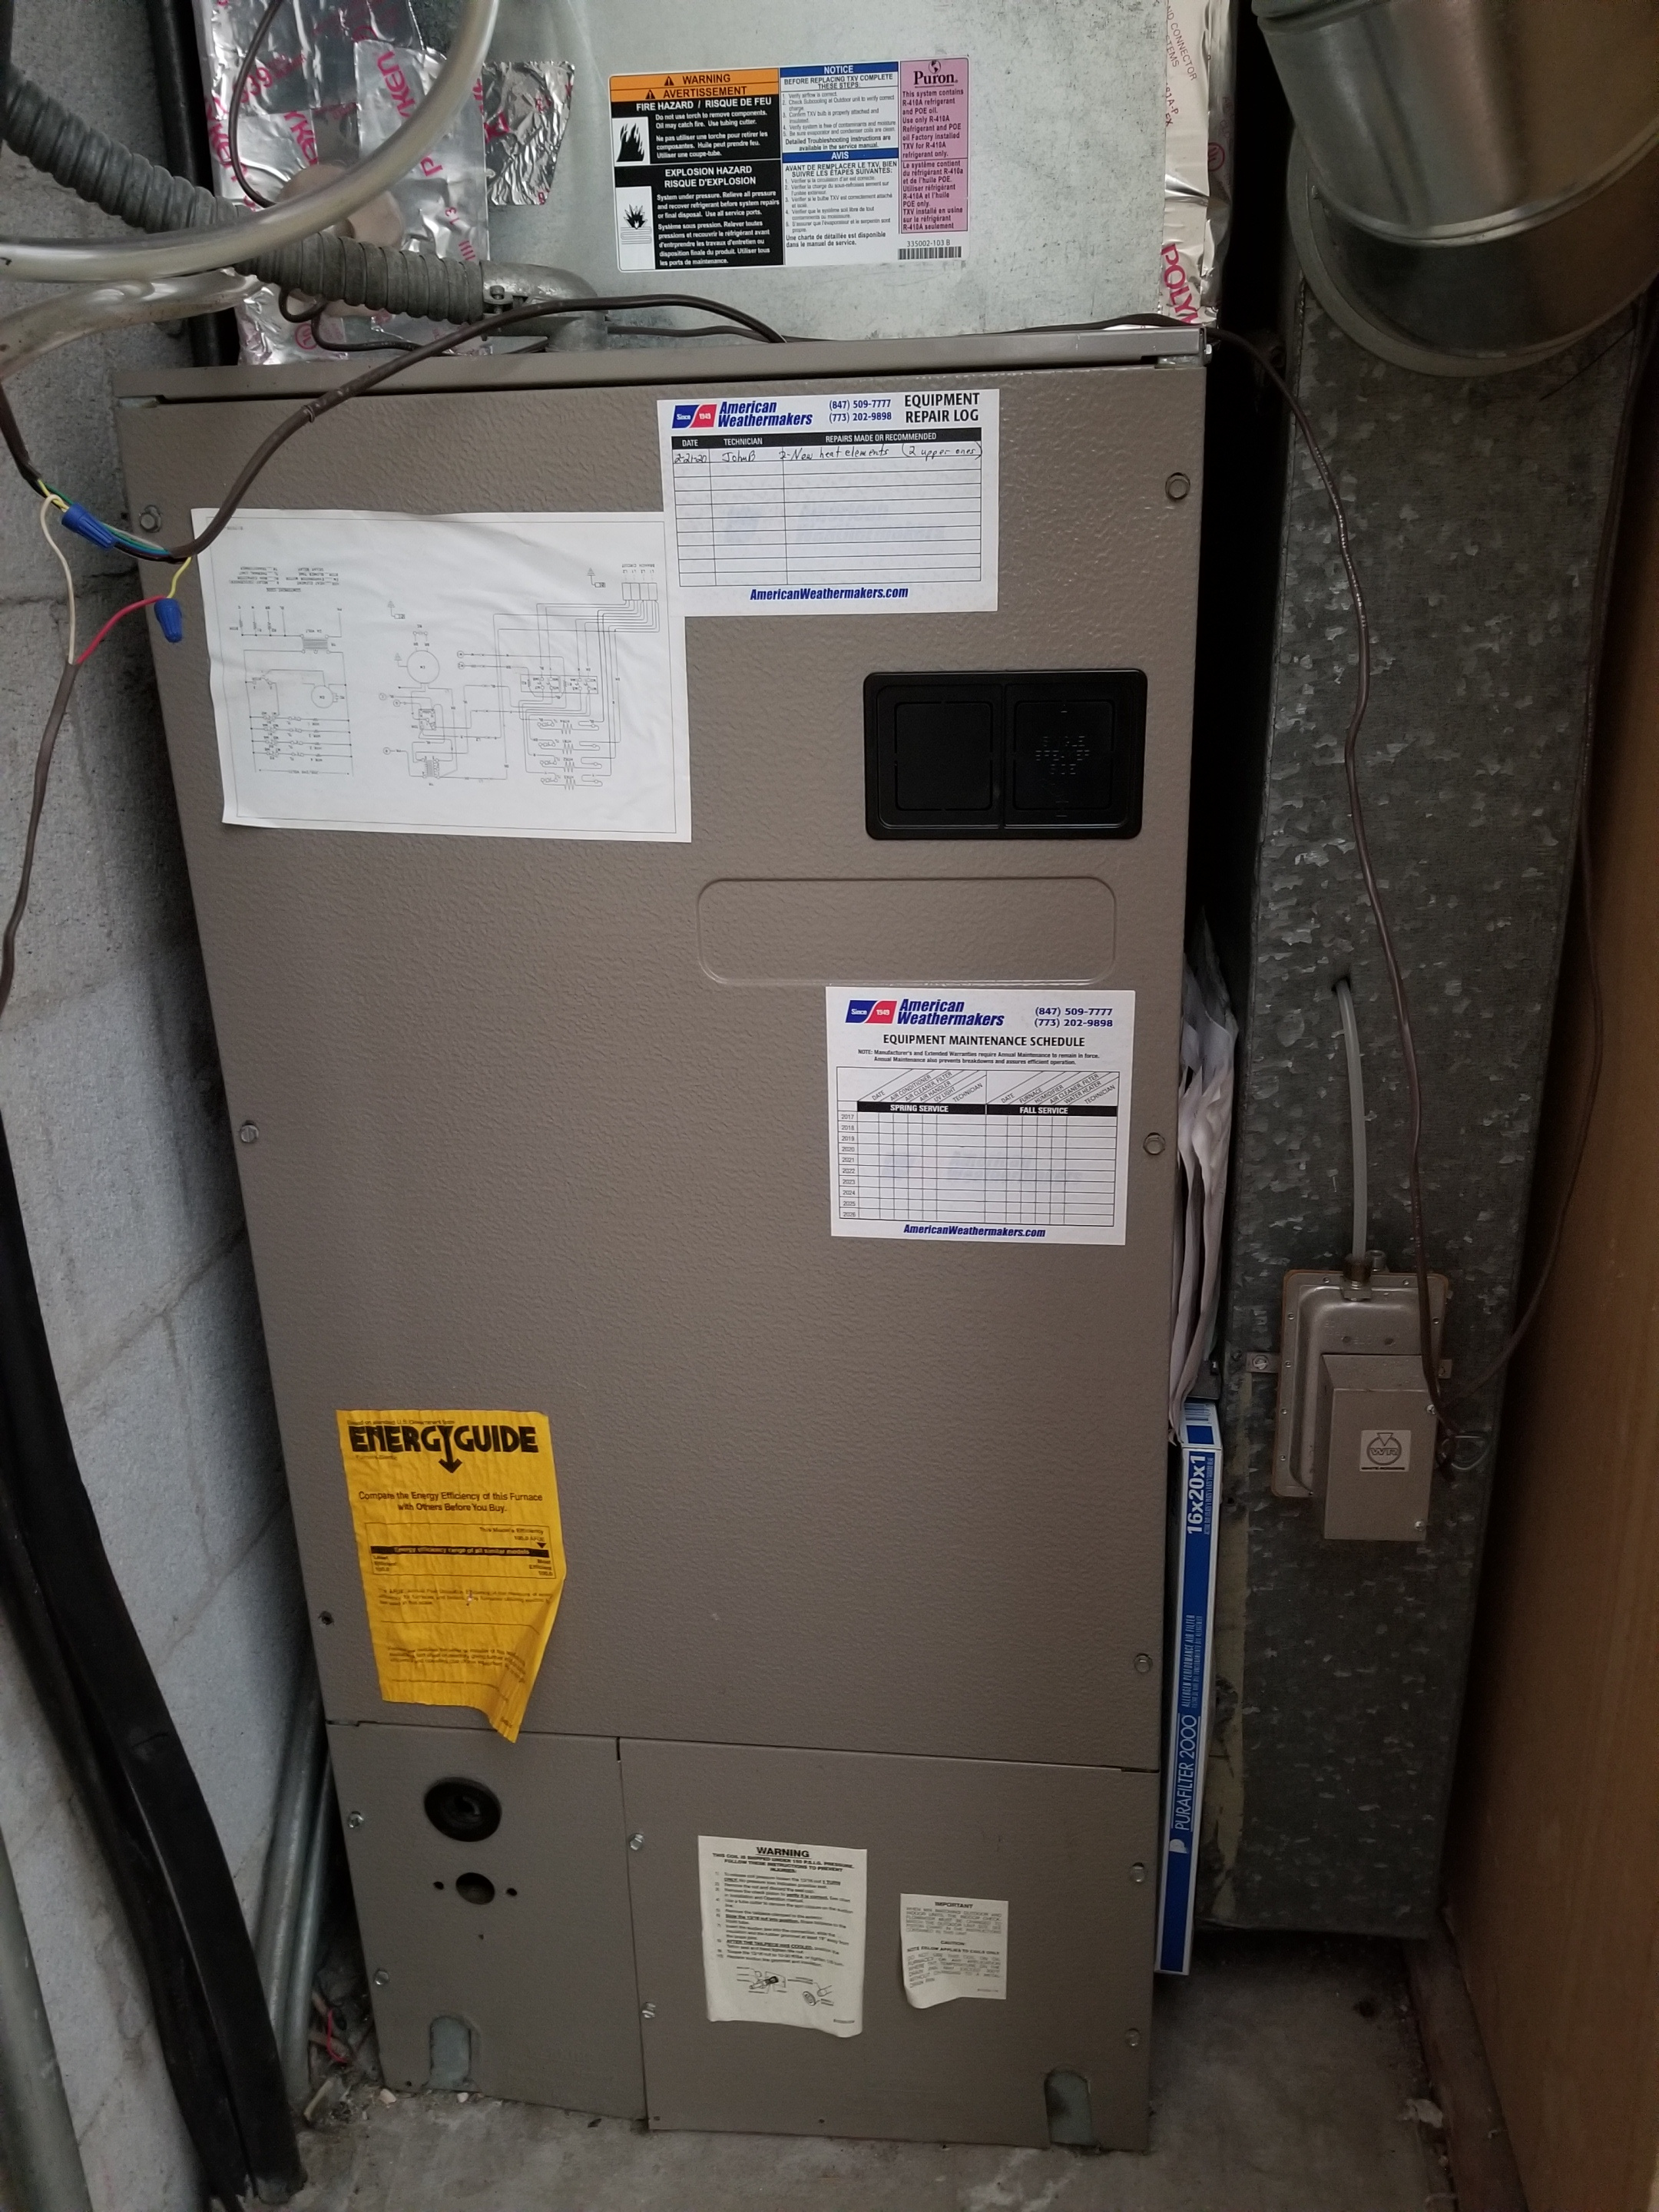 Repaired the electric heat furnace and made adjustments to improve the efficiency and life expectancy of the equipment